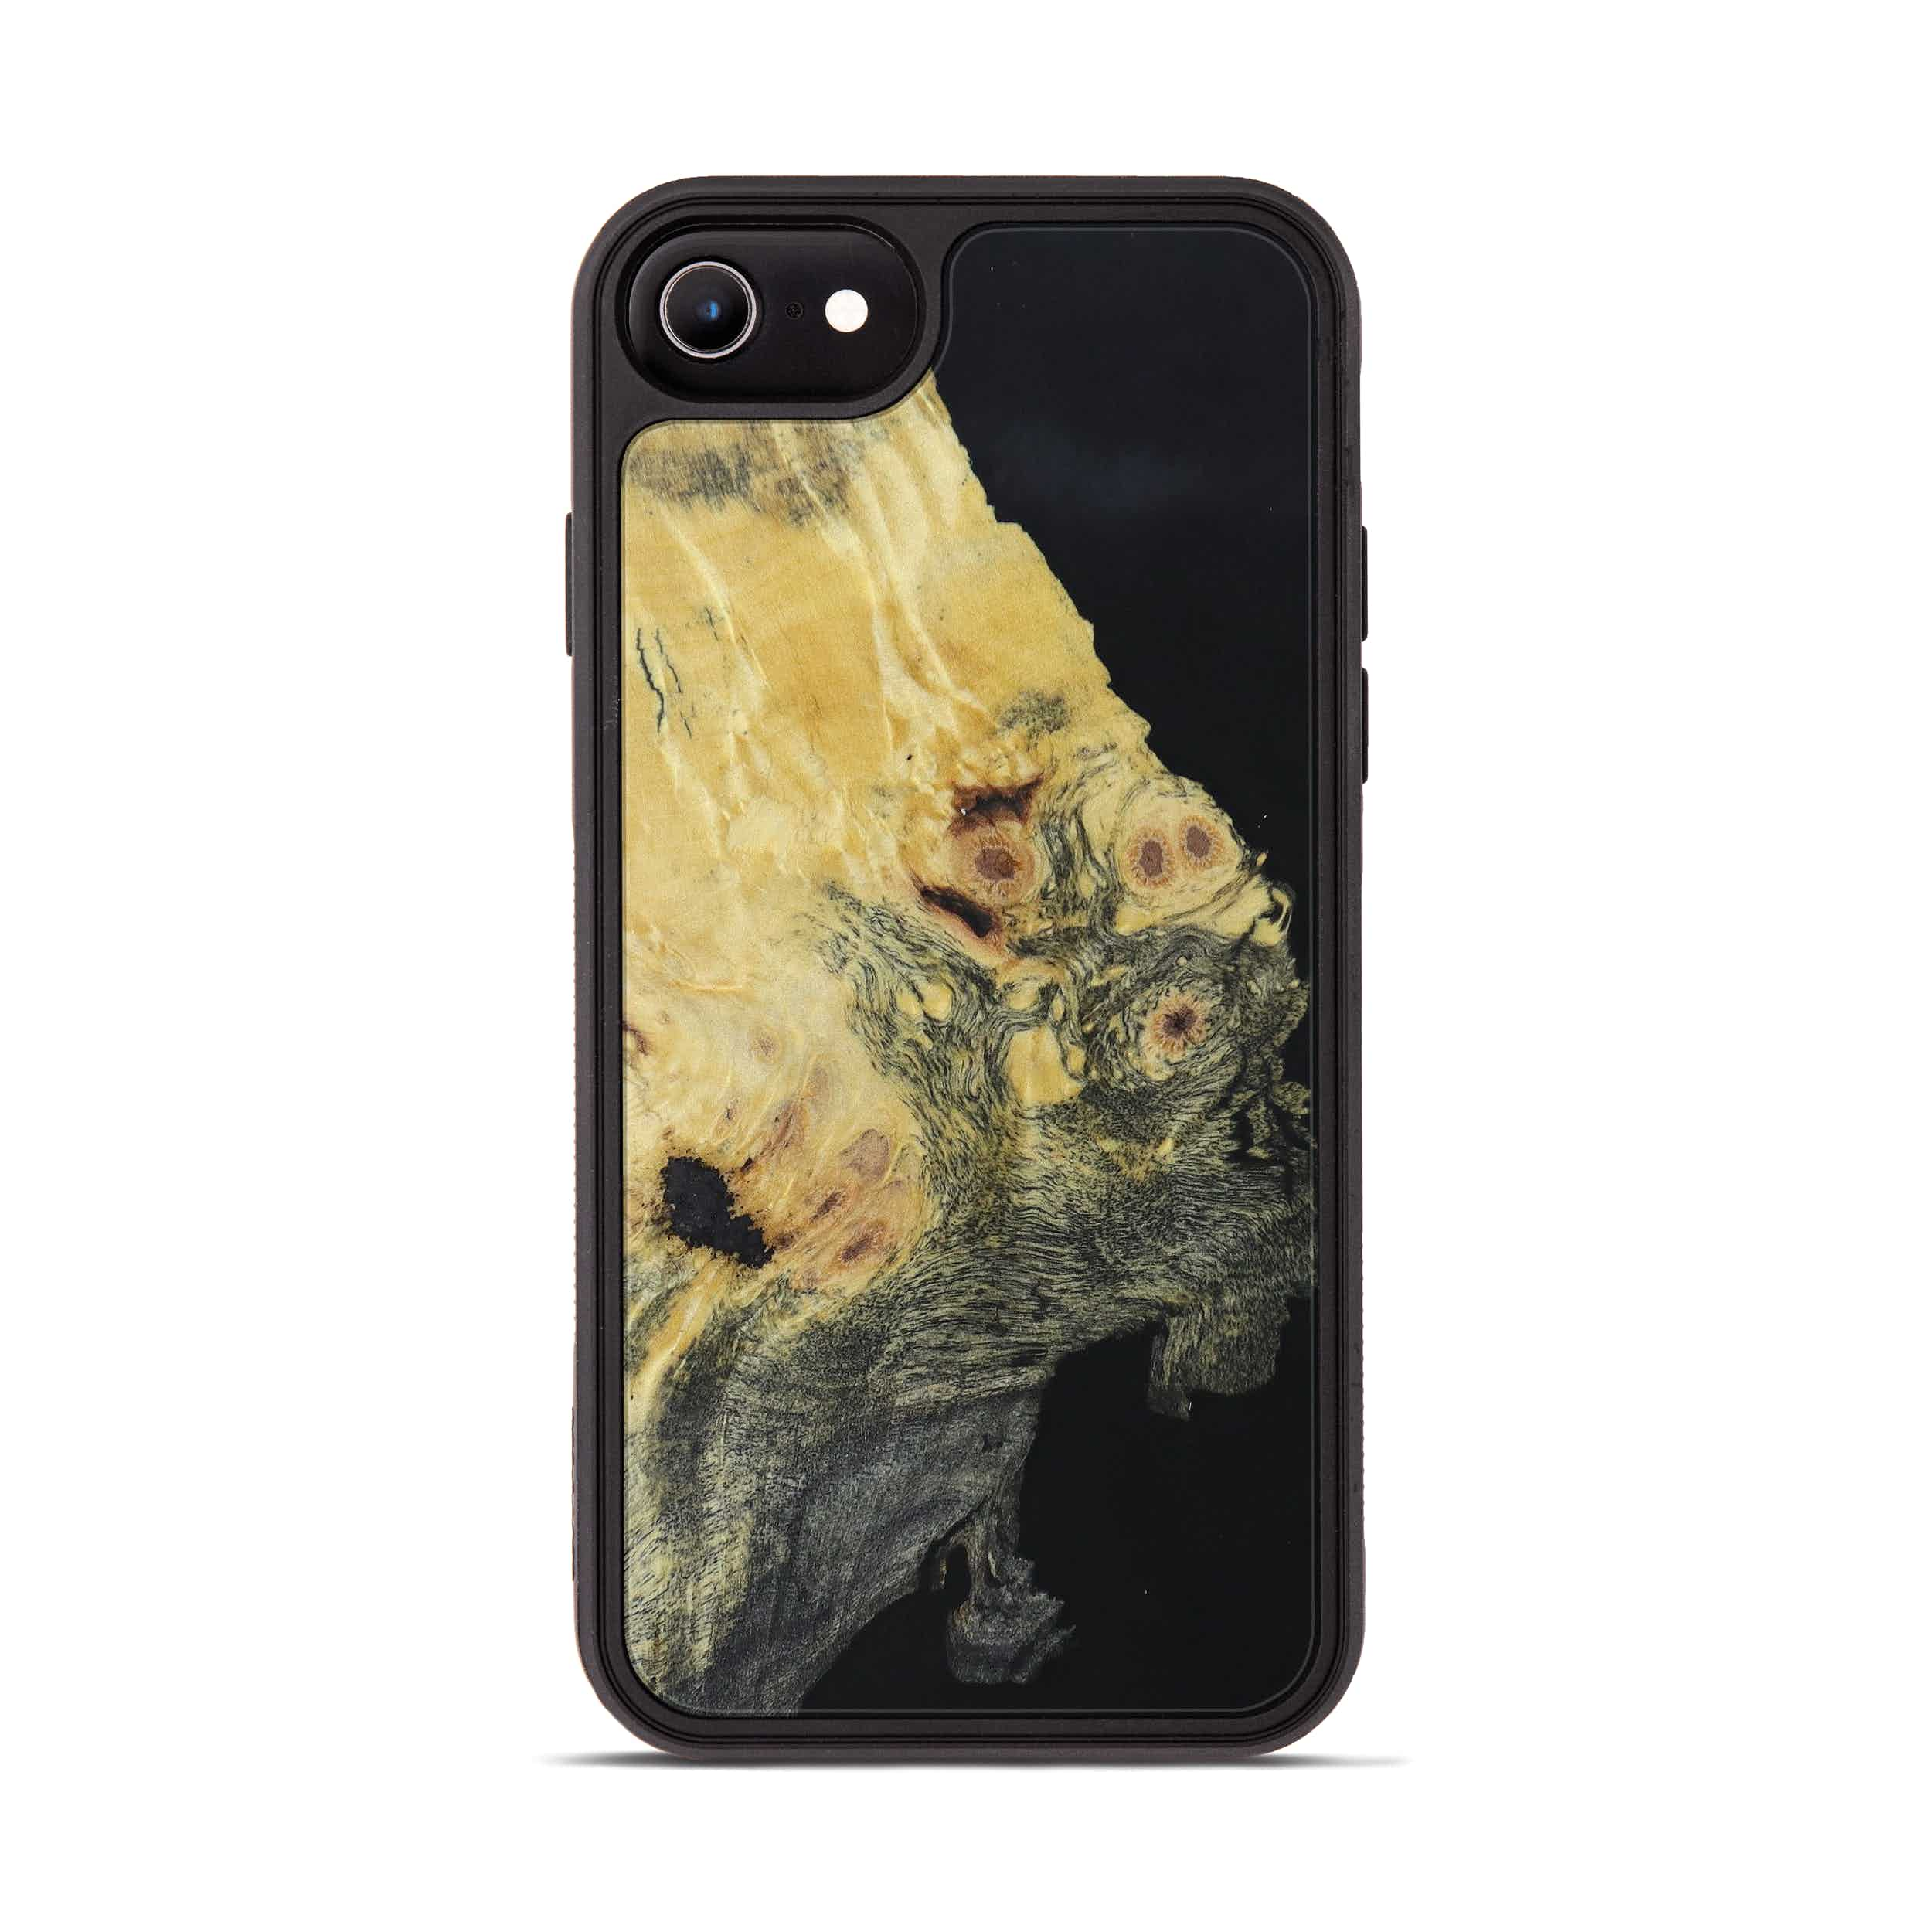 iPhone 6s Wood+Resin Phone Case - Labfive (Pure Black, 395167)